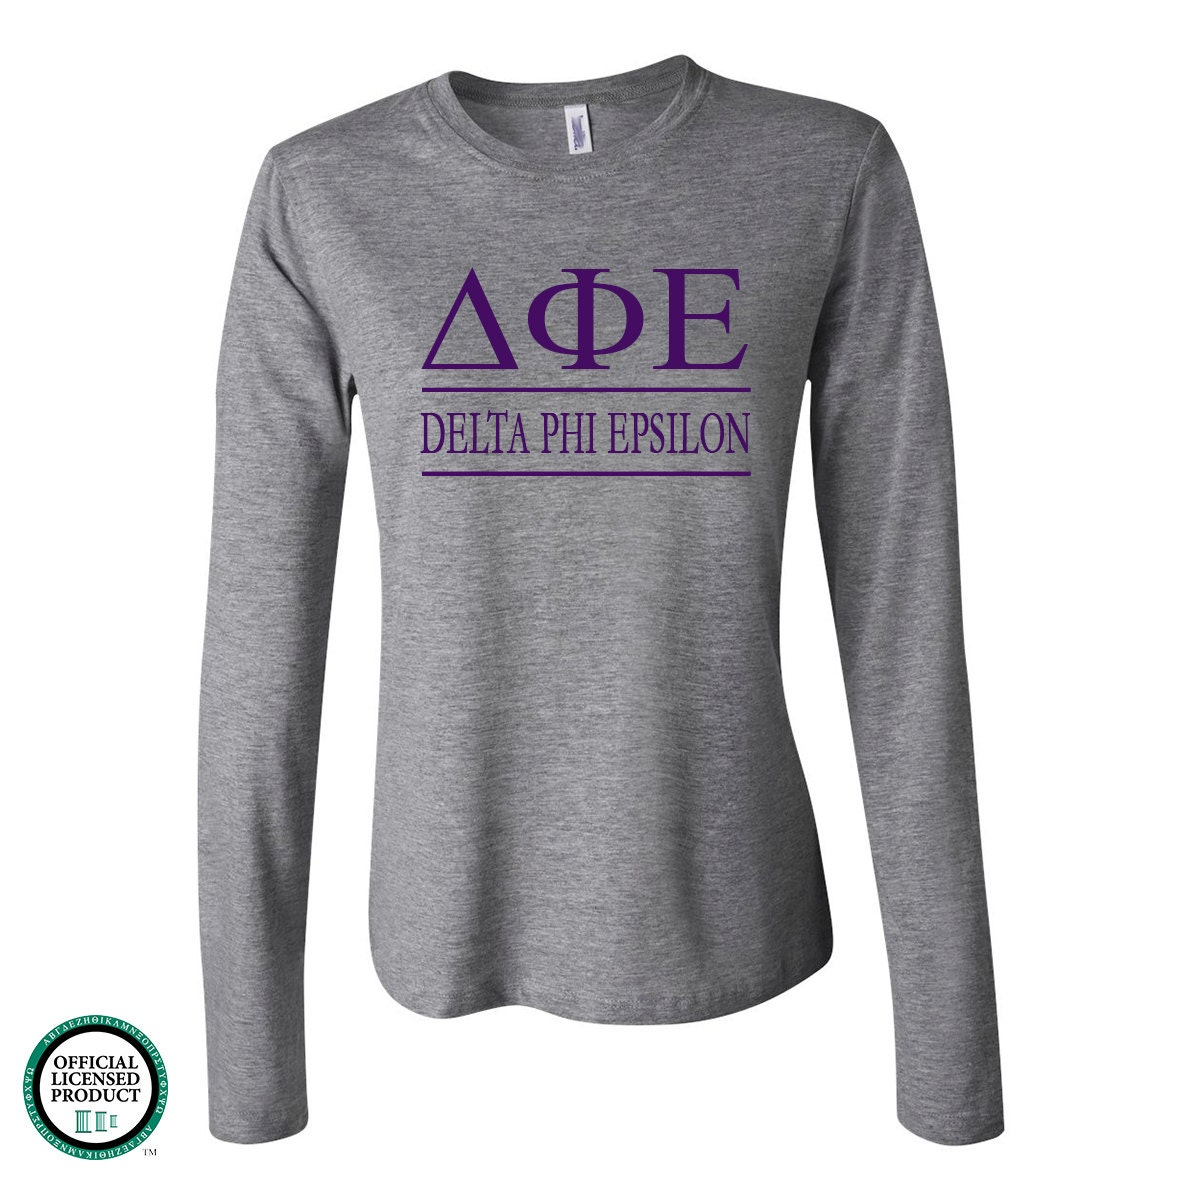 Delta Phi Epsilon Fitted Long Sleeve Tshirt Dfe Tshirt Dfe